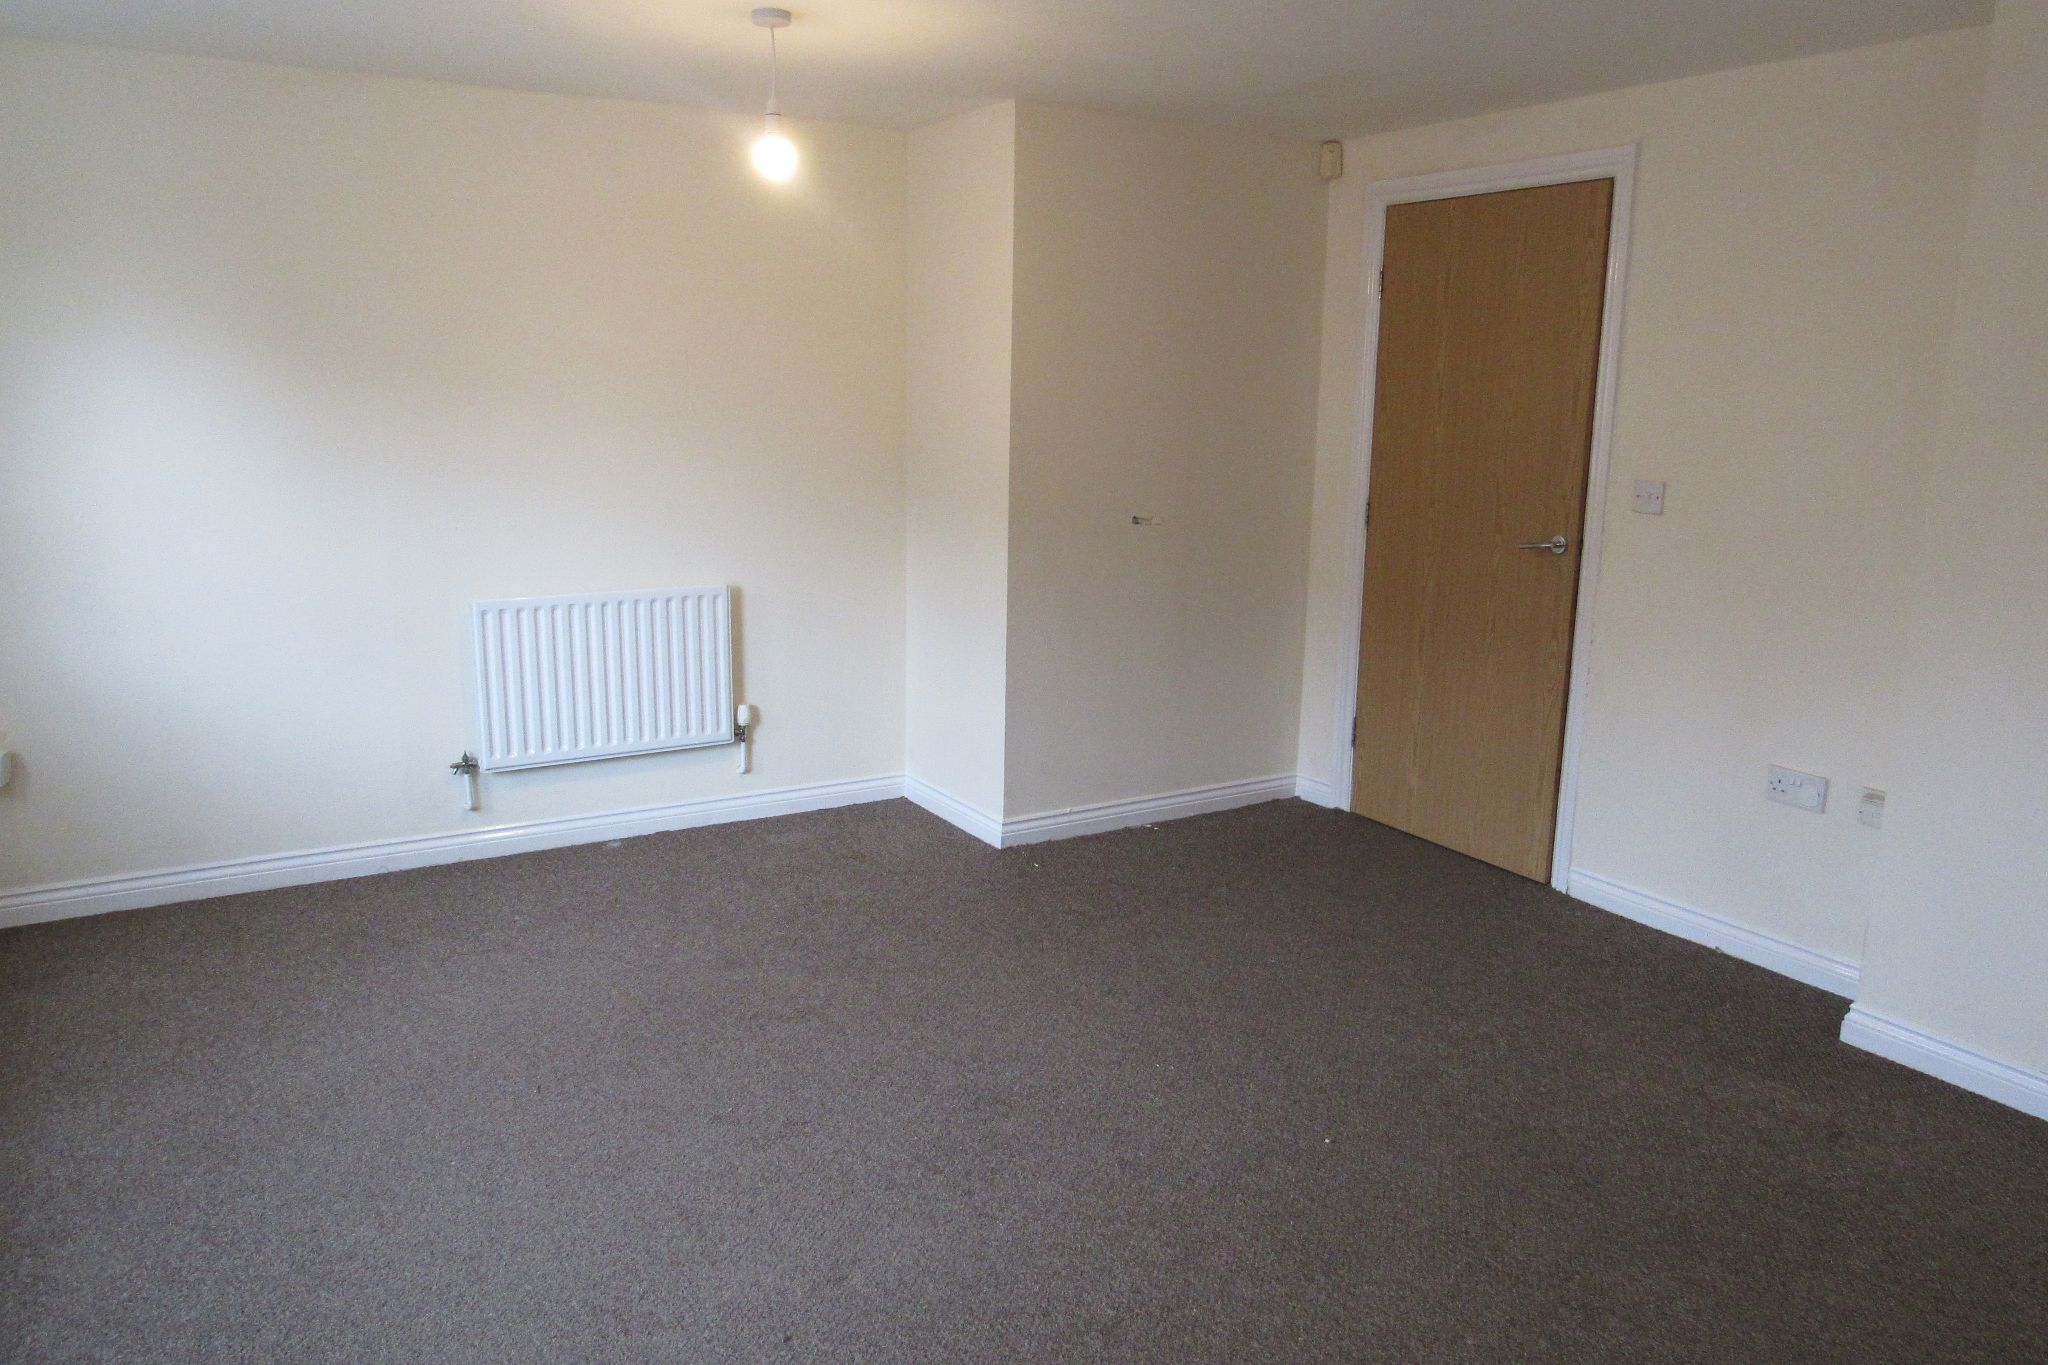 2 bedroom apartment flat/apartment SSTC in Manchester - Photograph 3.